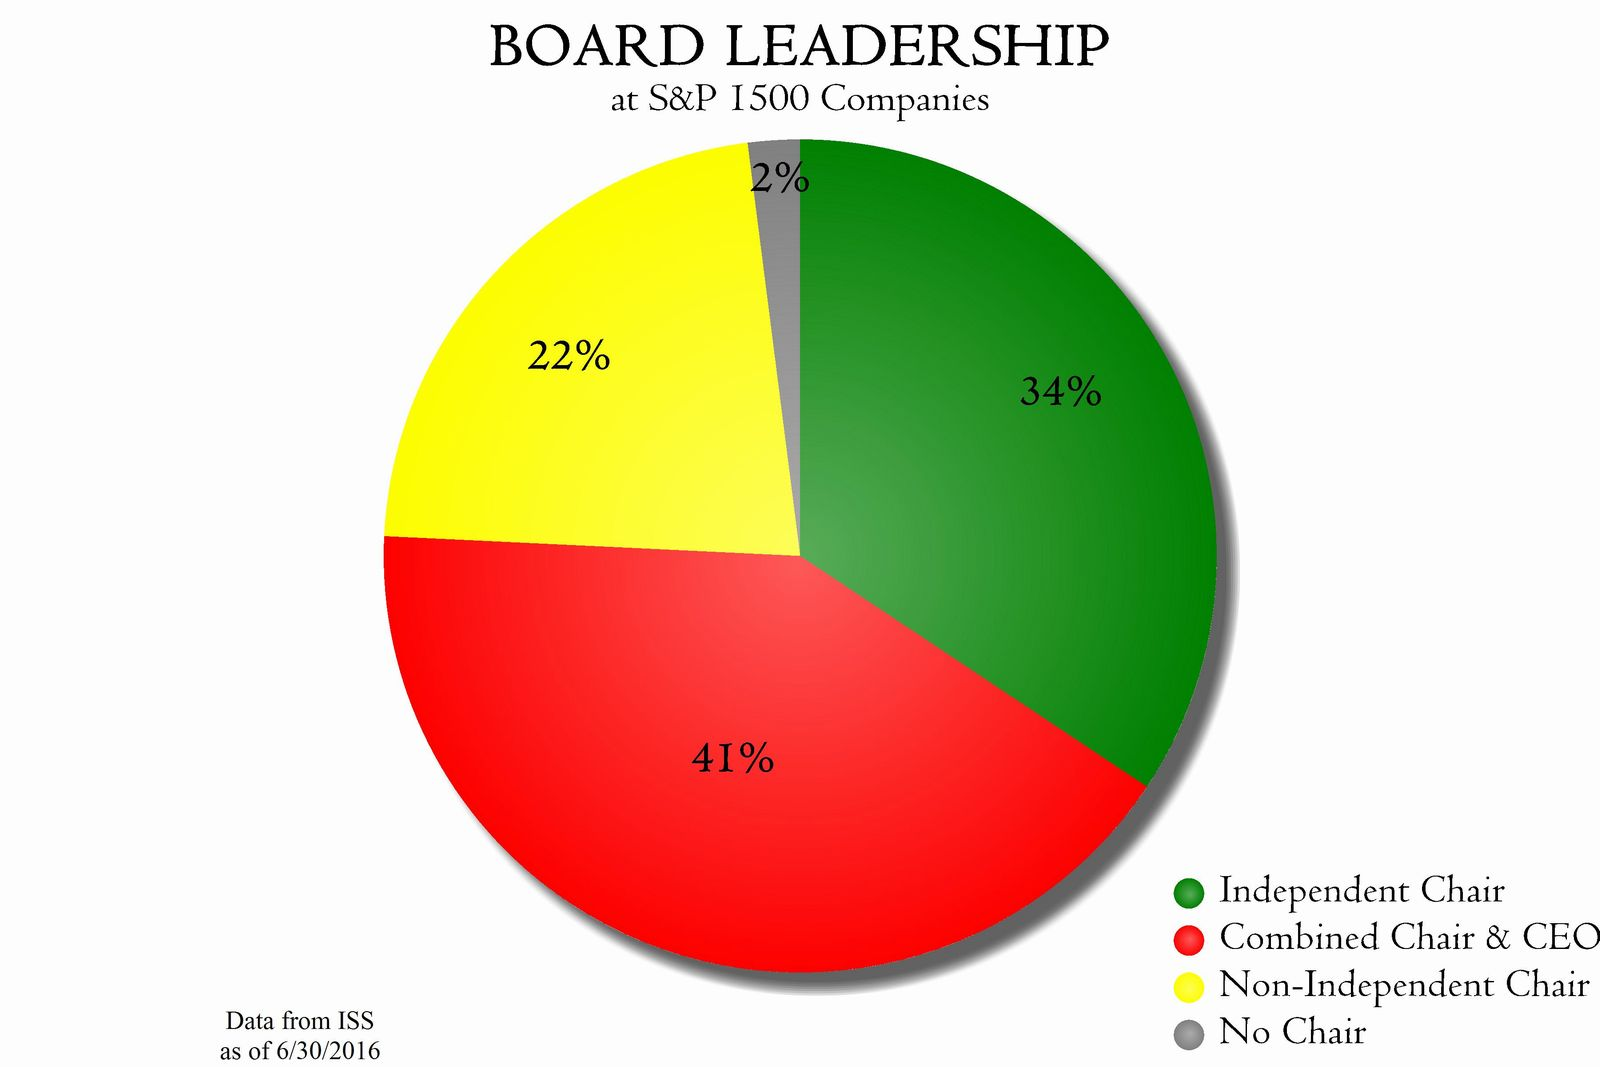 Independent Board Chair